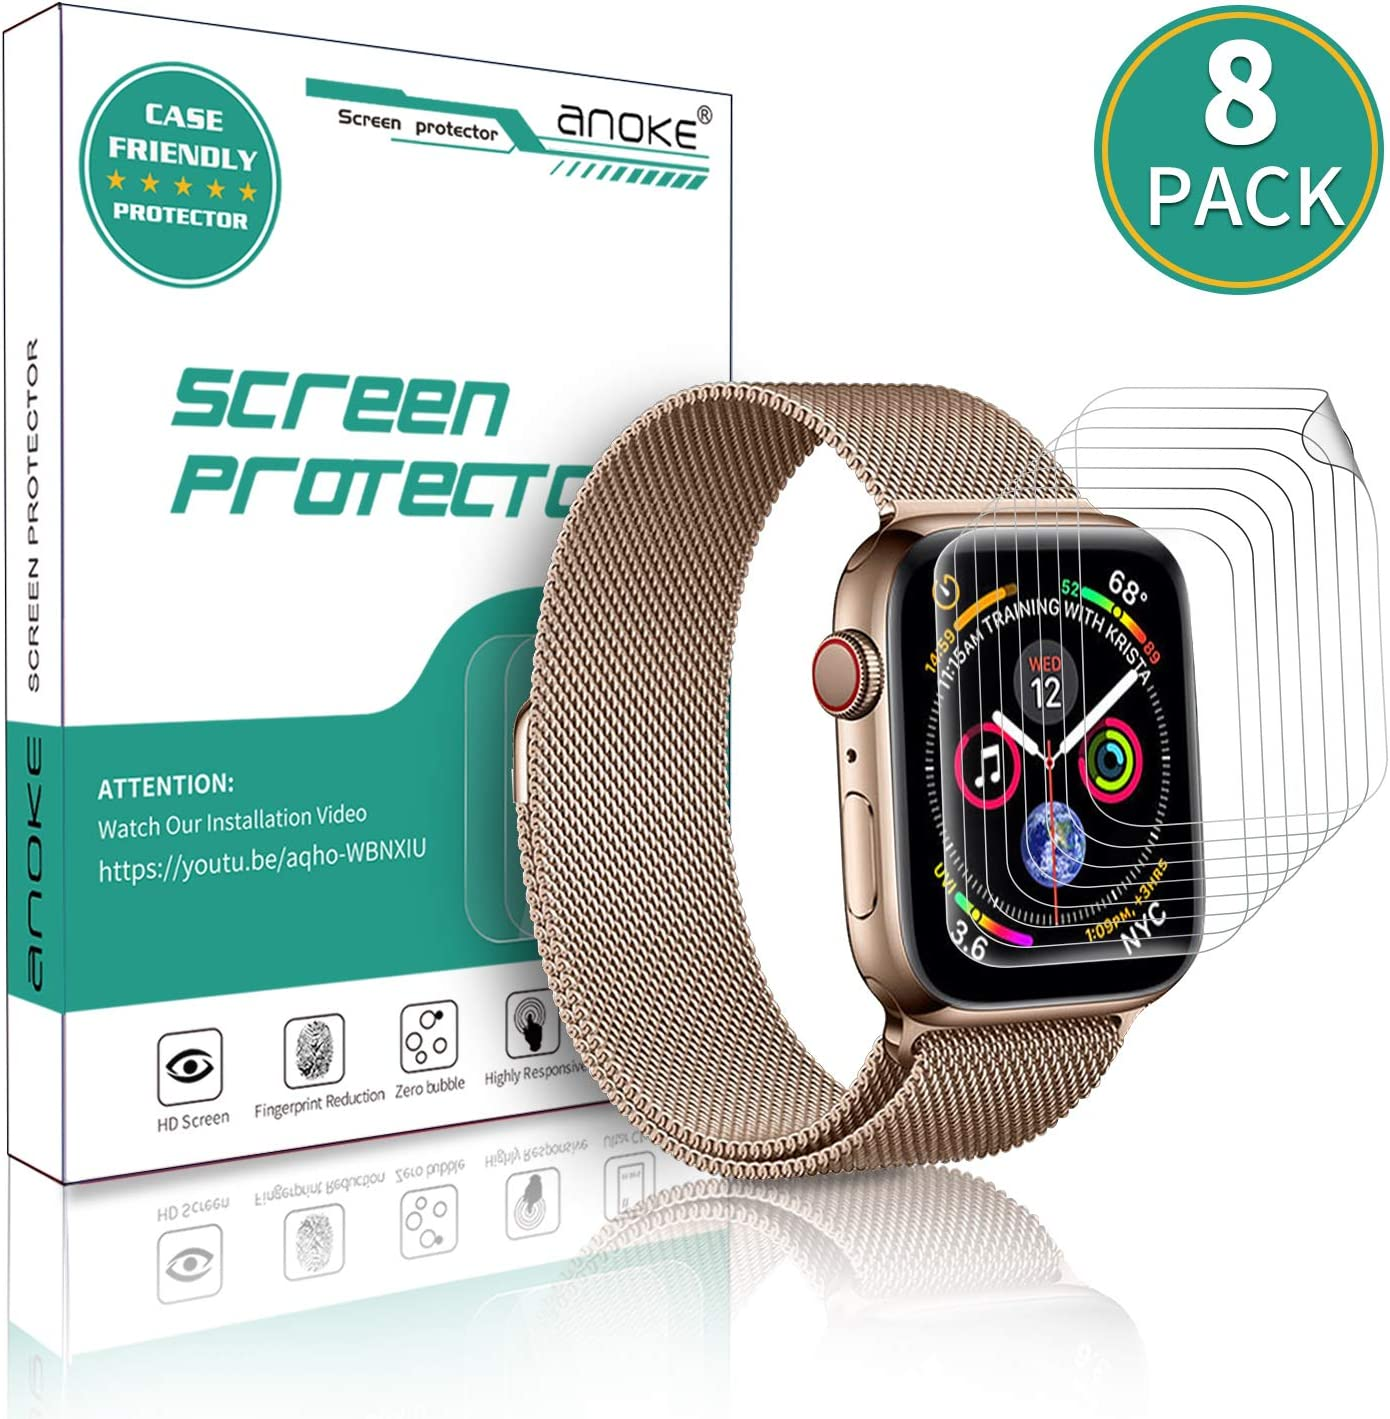 [8 Pack] AnoKe for Apple Watch iWatch 42mm / 44mm Screen Protector (Series 6/5 / 4/ SE Series 3/2),Liquid Skin [Max Coverage] Curved Edge Case Band Friendly Lifetime Replacement Warranty 42mm /44mm